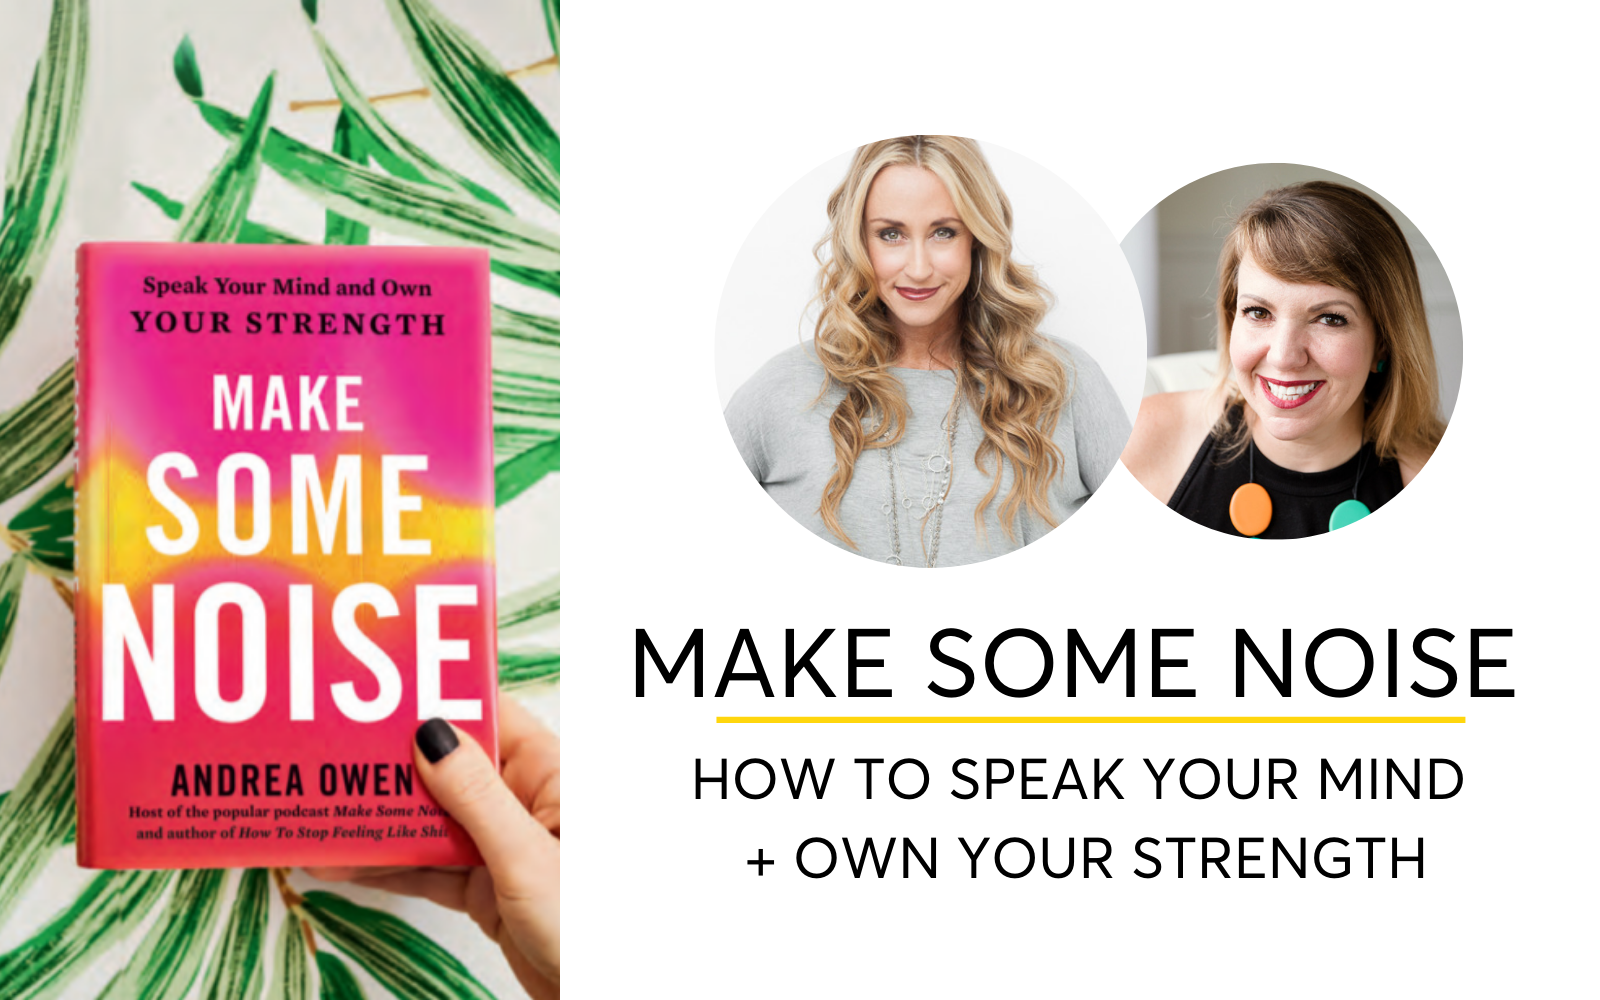 Make Some Noise With Andrea Owen